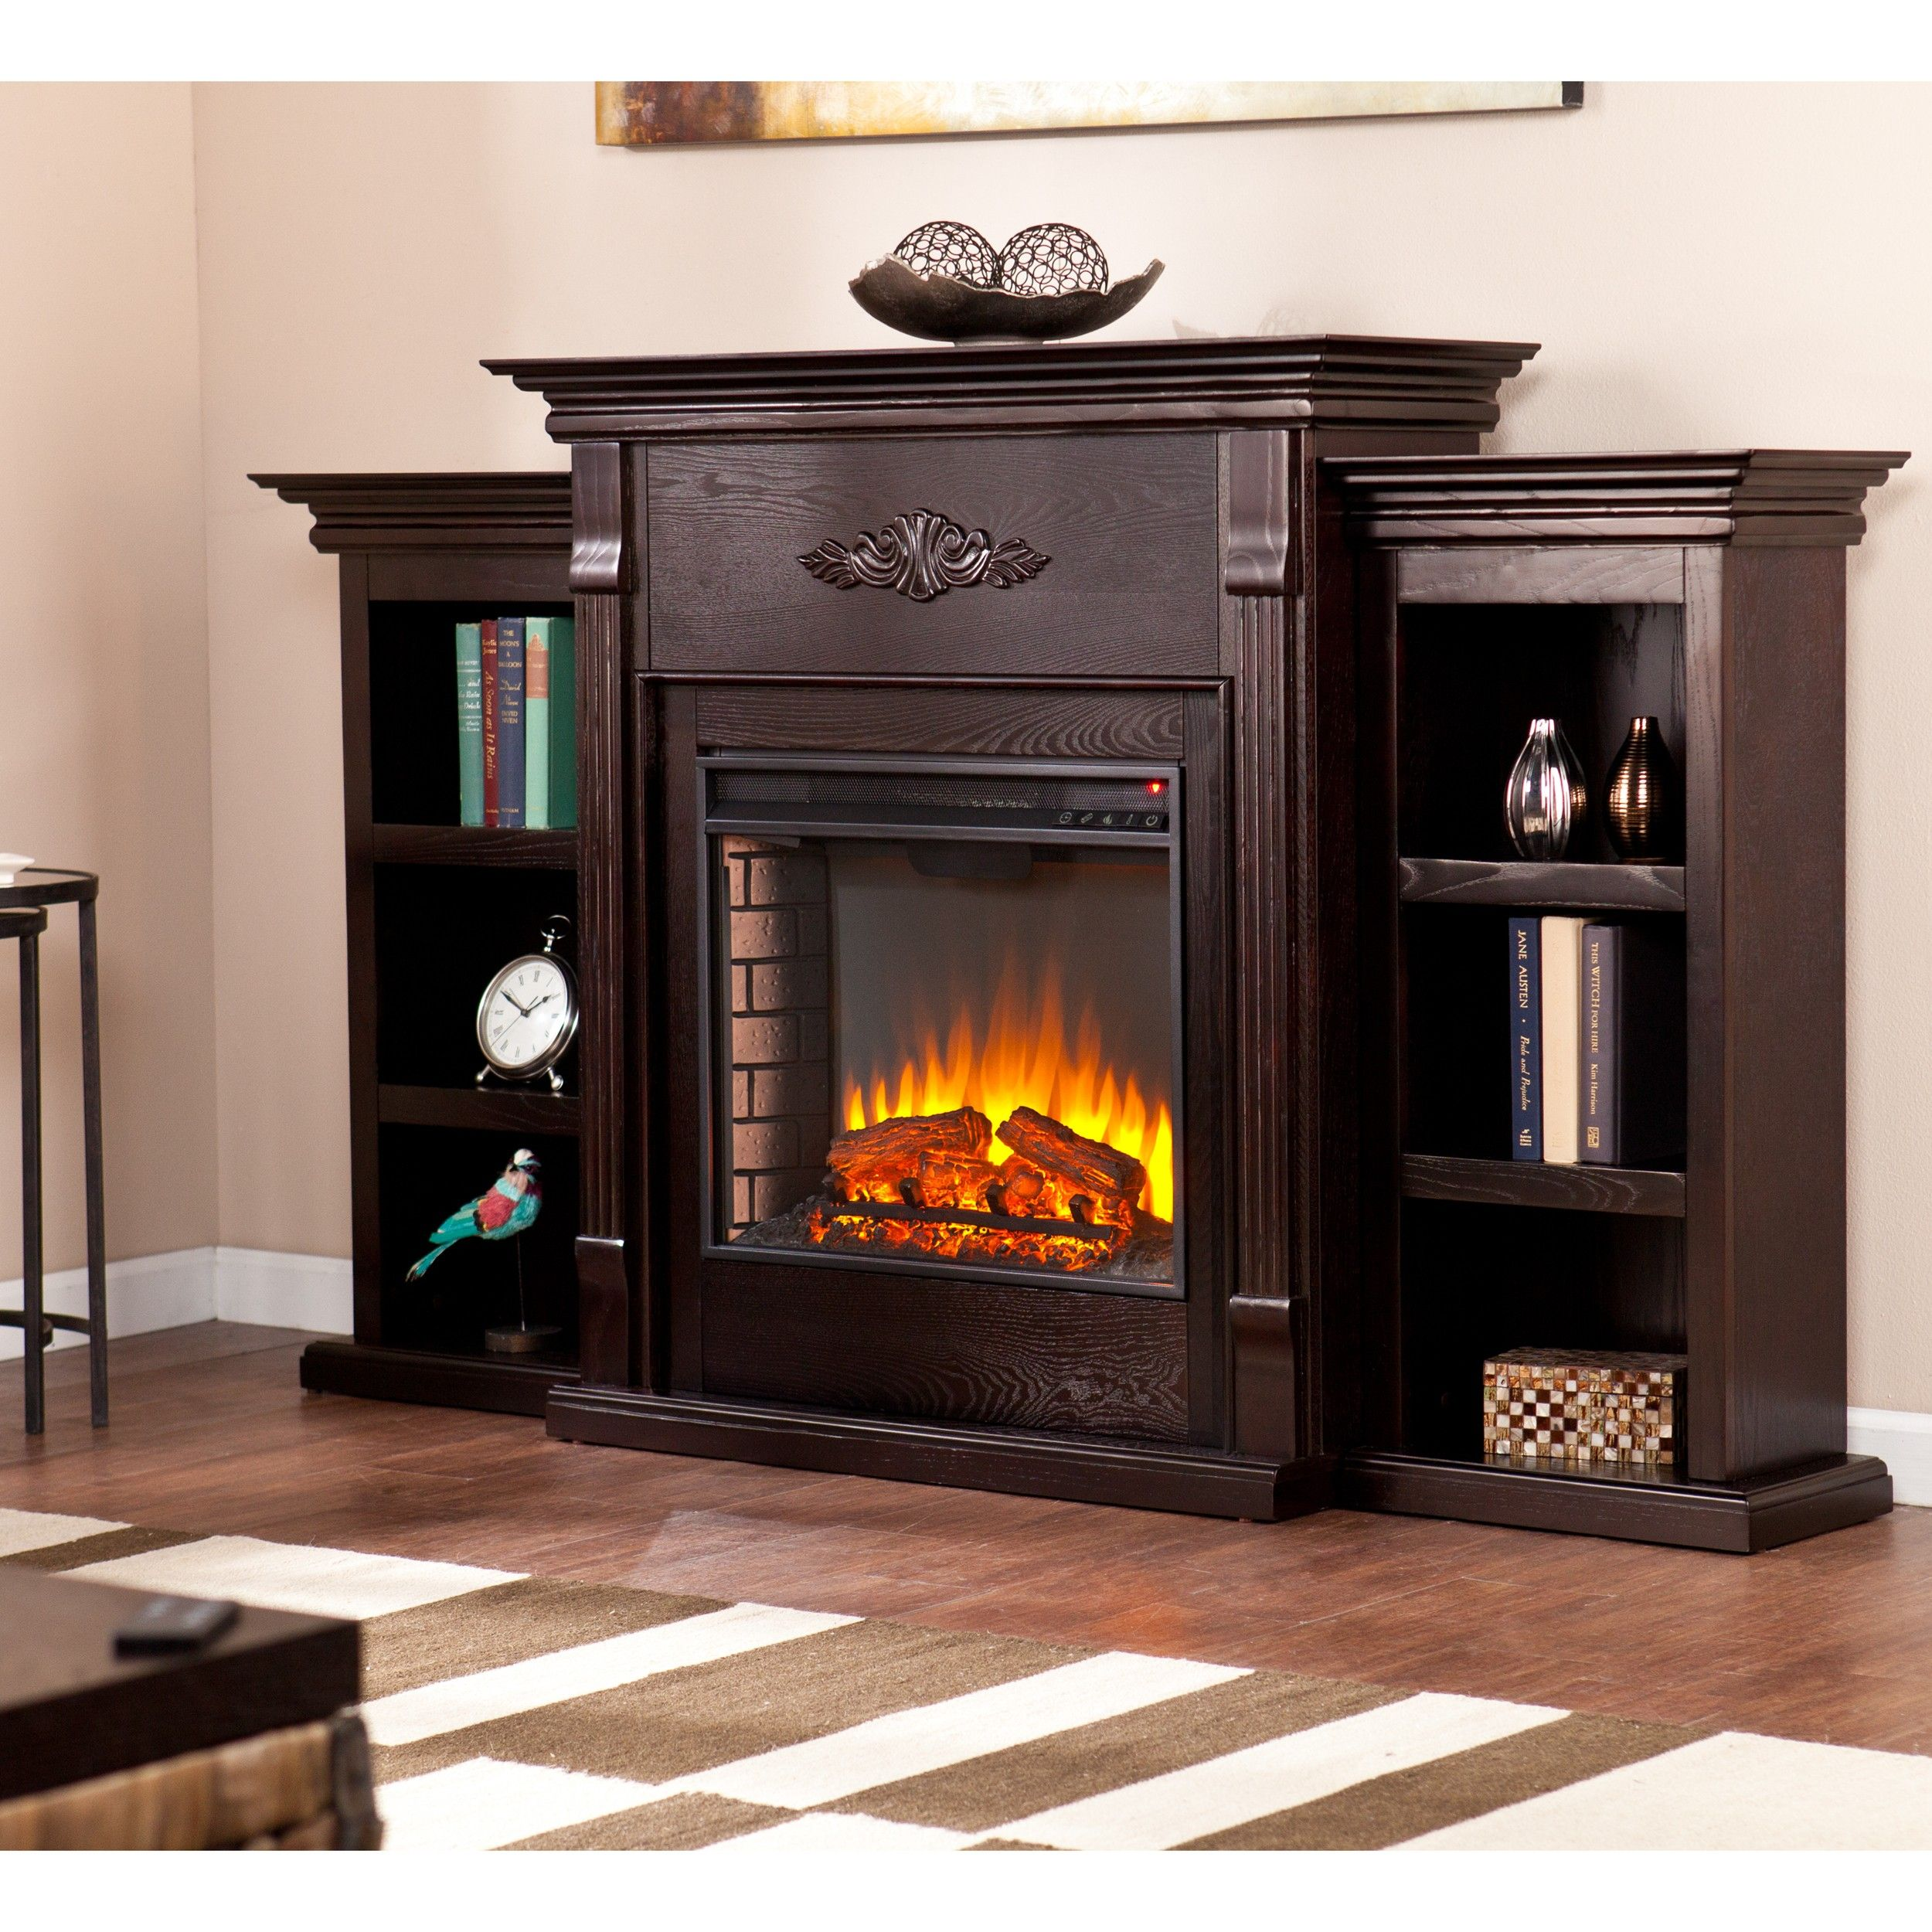 Southern Enterprises Tennyson Espresso Fireplace With Bookcases